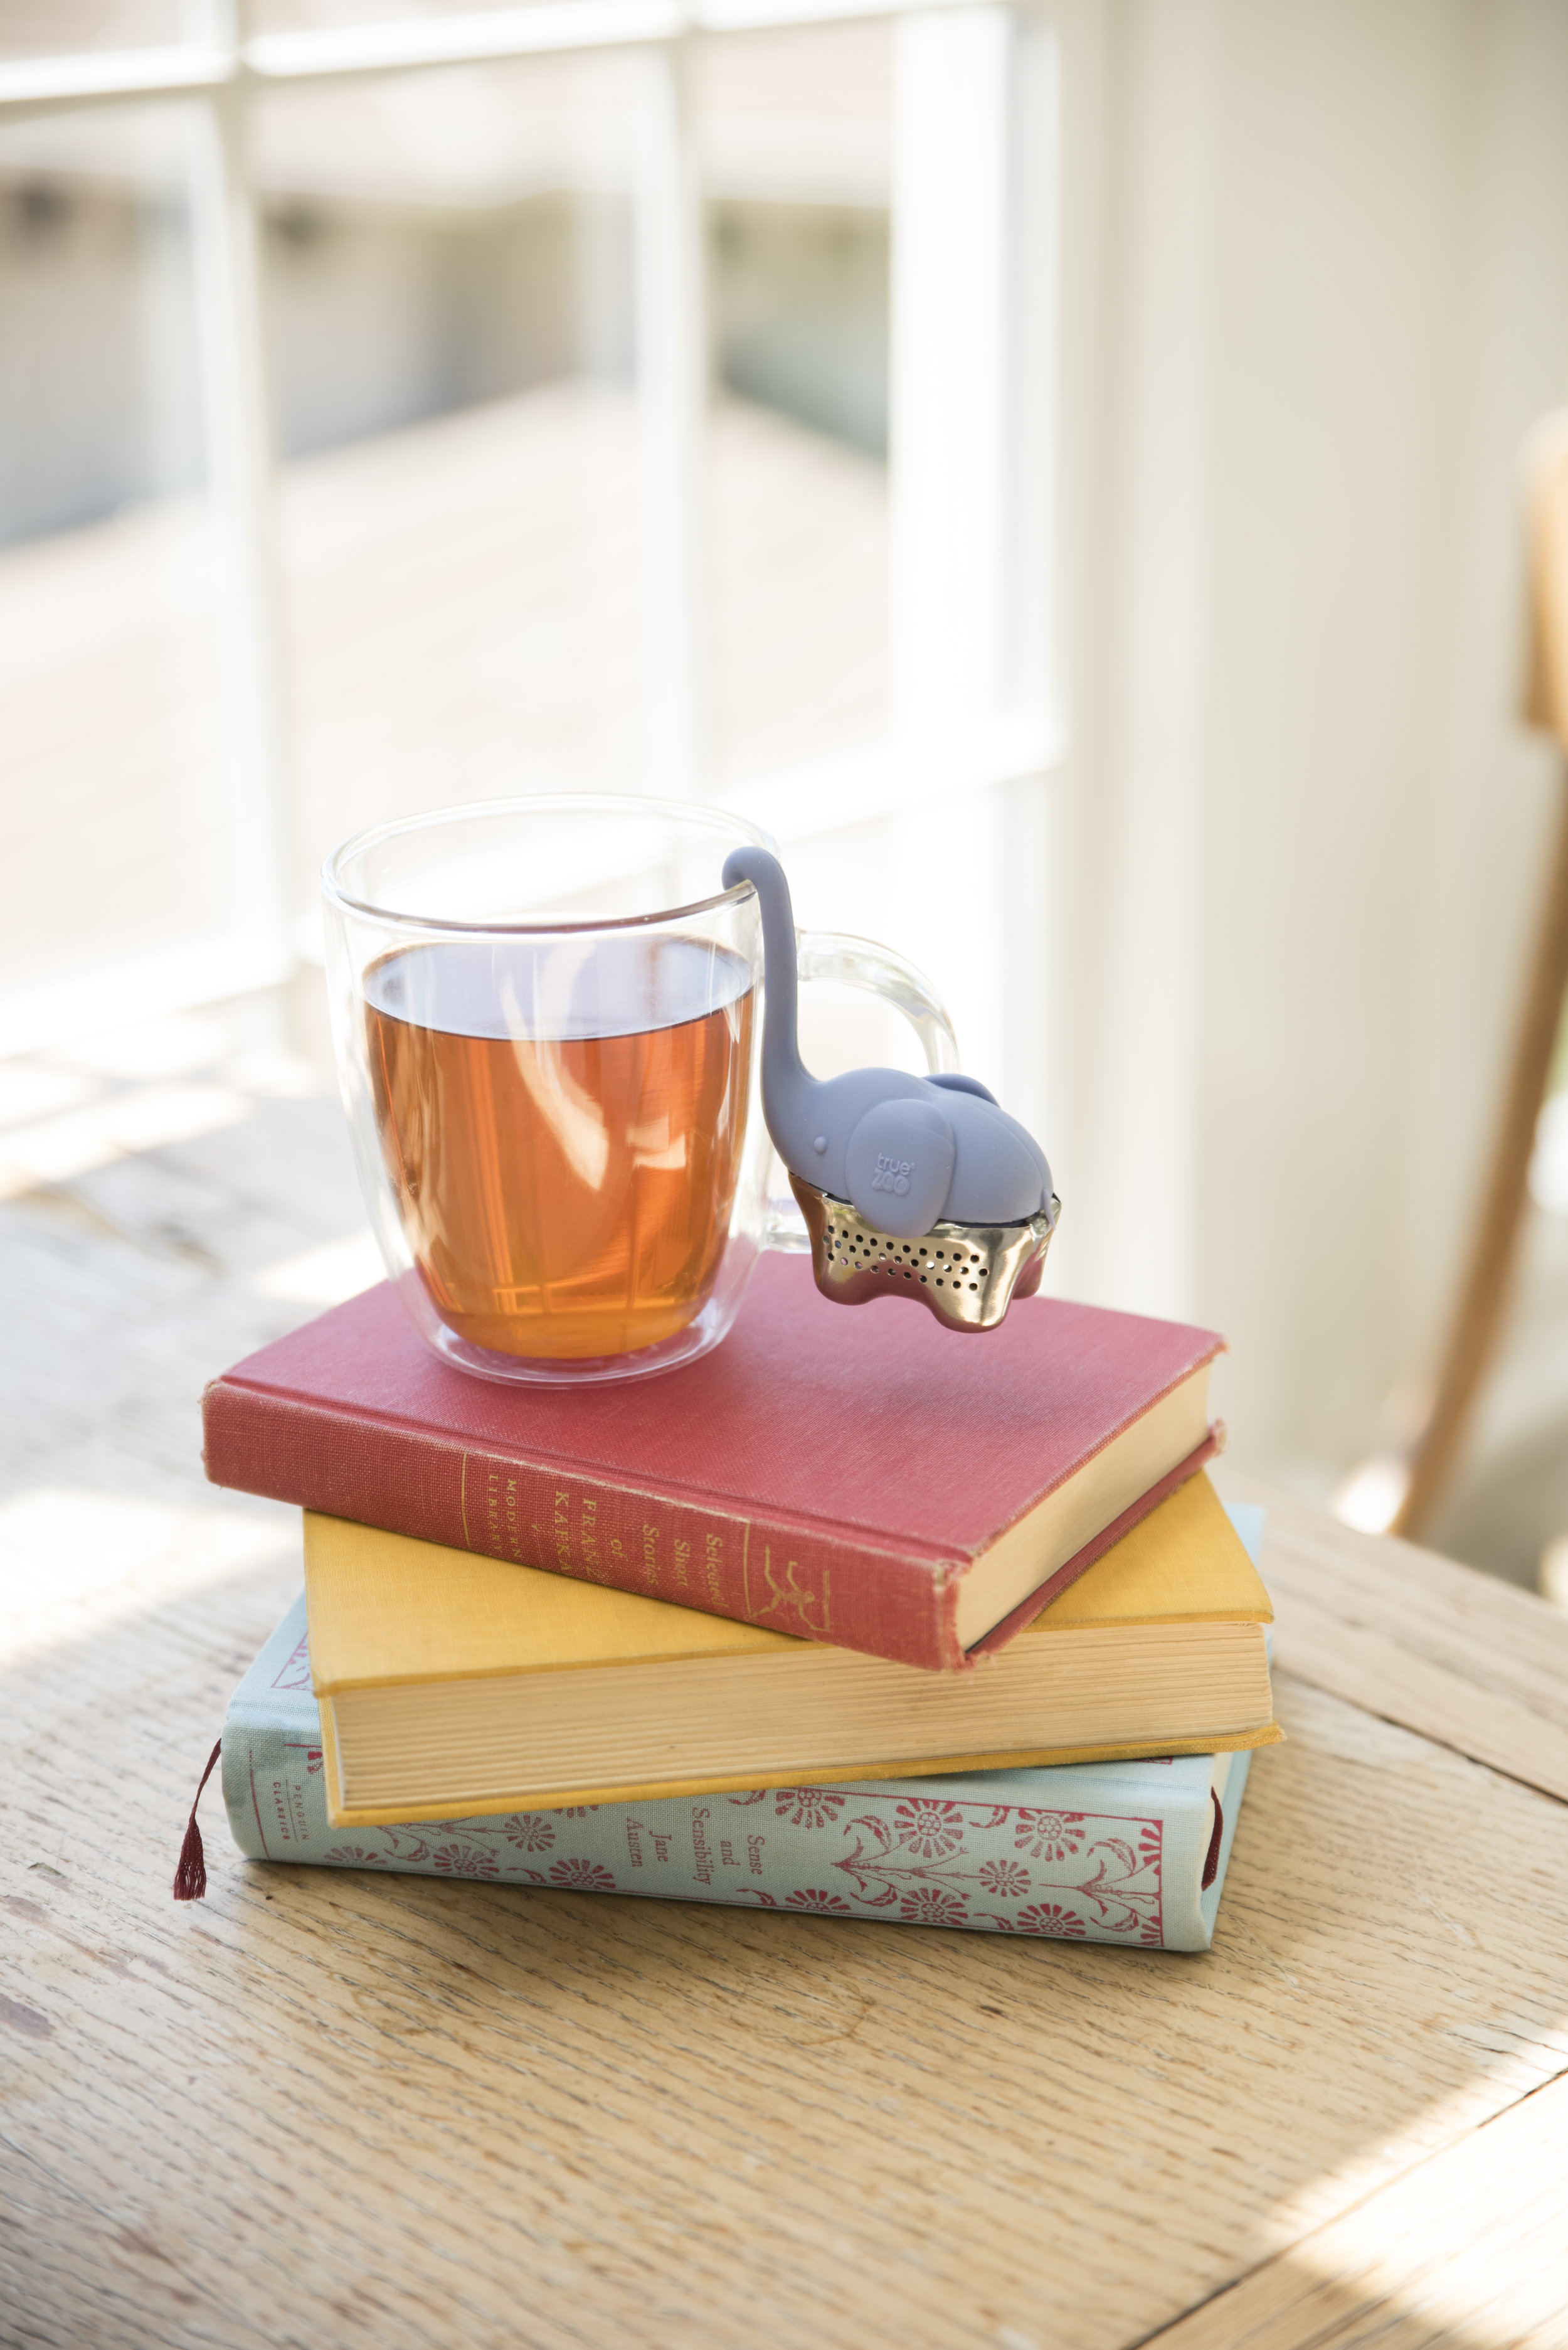 Consider this your new brew buddy. With her stainless steel body, she holds enough loose leaf tea to brew a perfect mug of tea. While her specially designed trunk hangs on the rim of any glass. Suddenly, every other tea infuser is irr-elephant! -